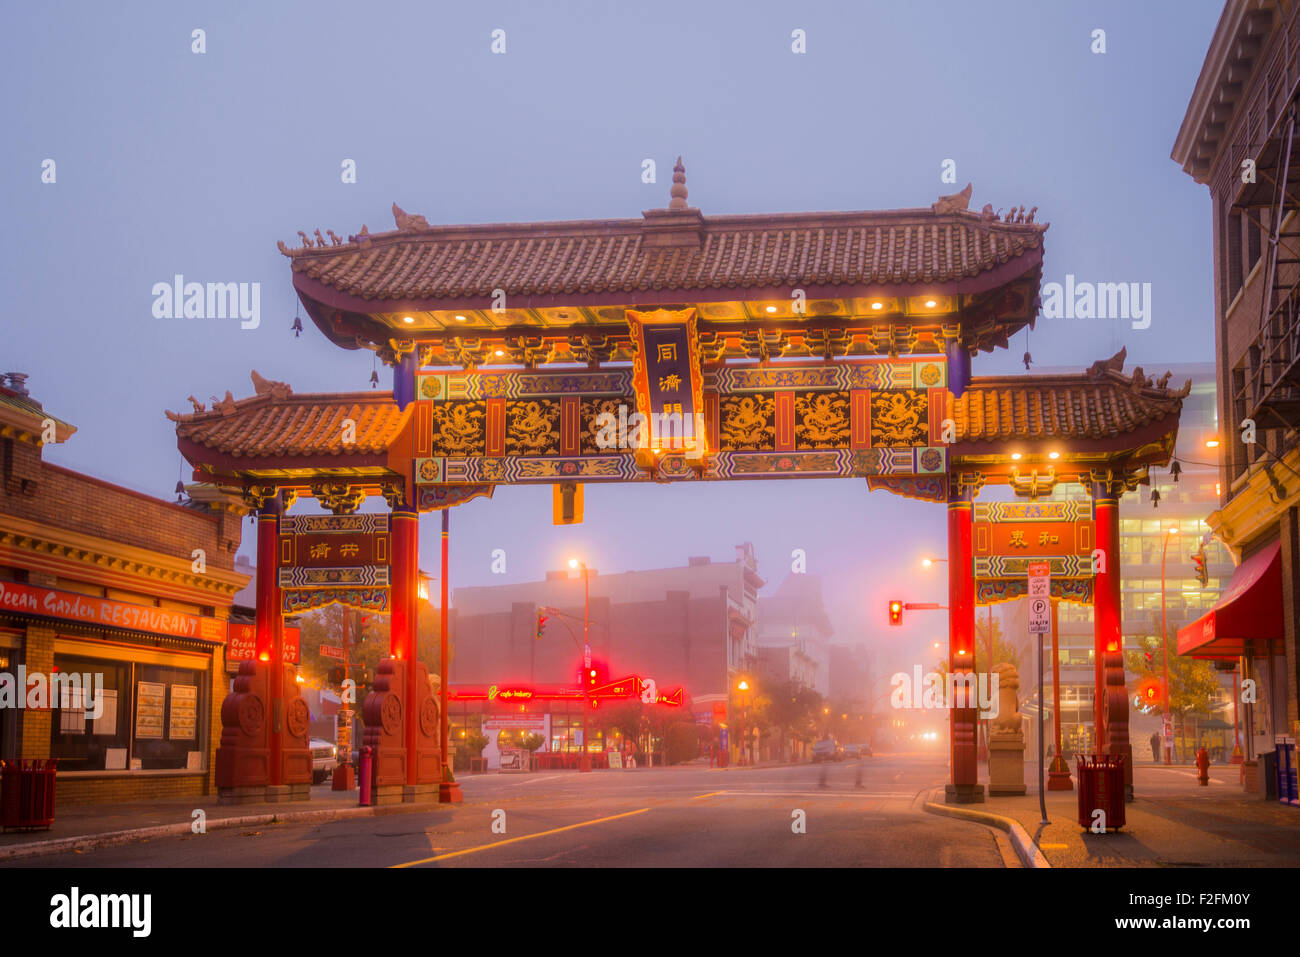 ''The Gates of Harmonious Interest', Chinatown,   Victoria, Vancouver Island, British Columbia, Canada - Stock Image